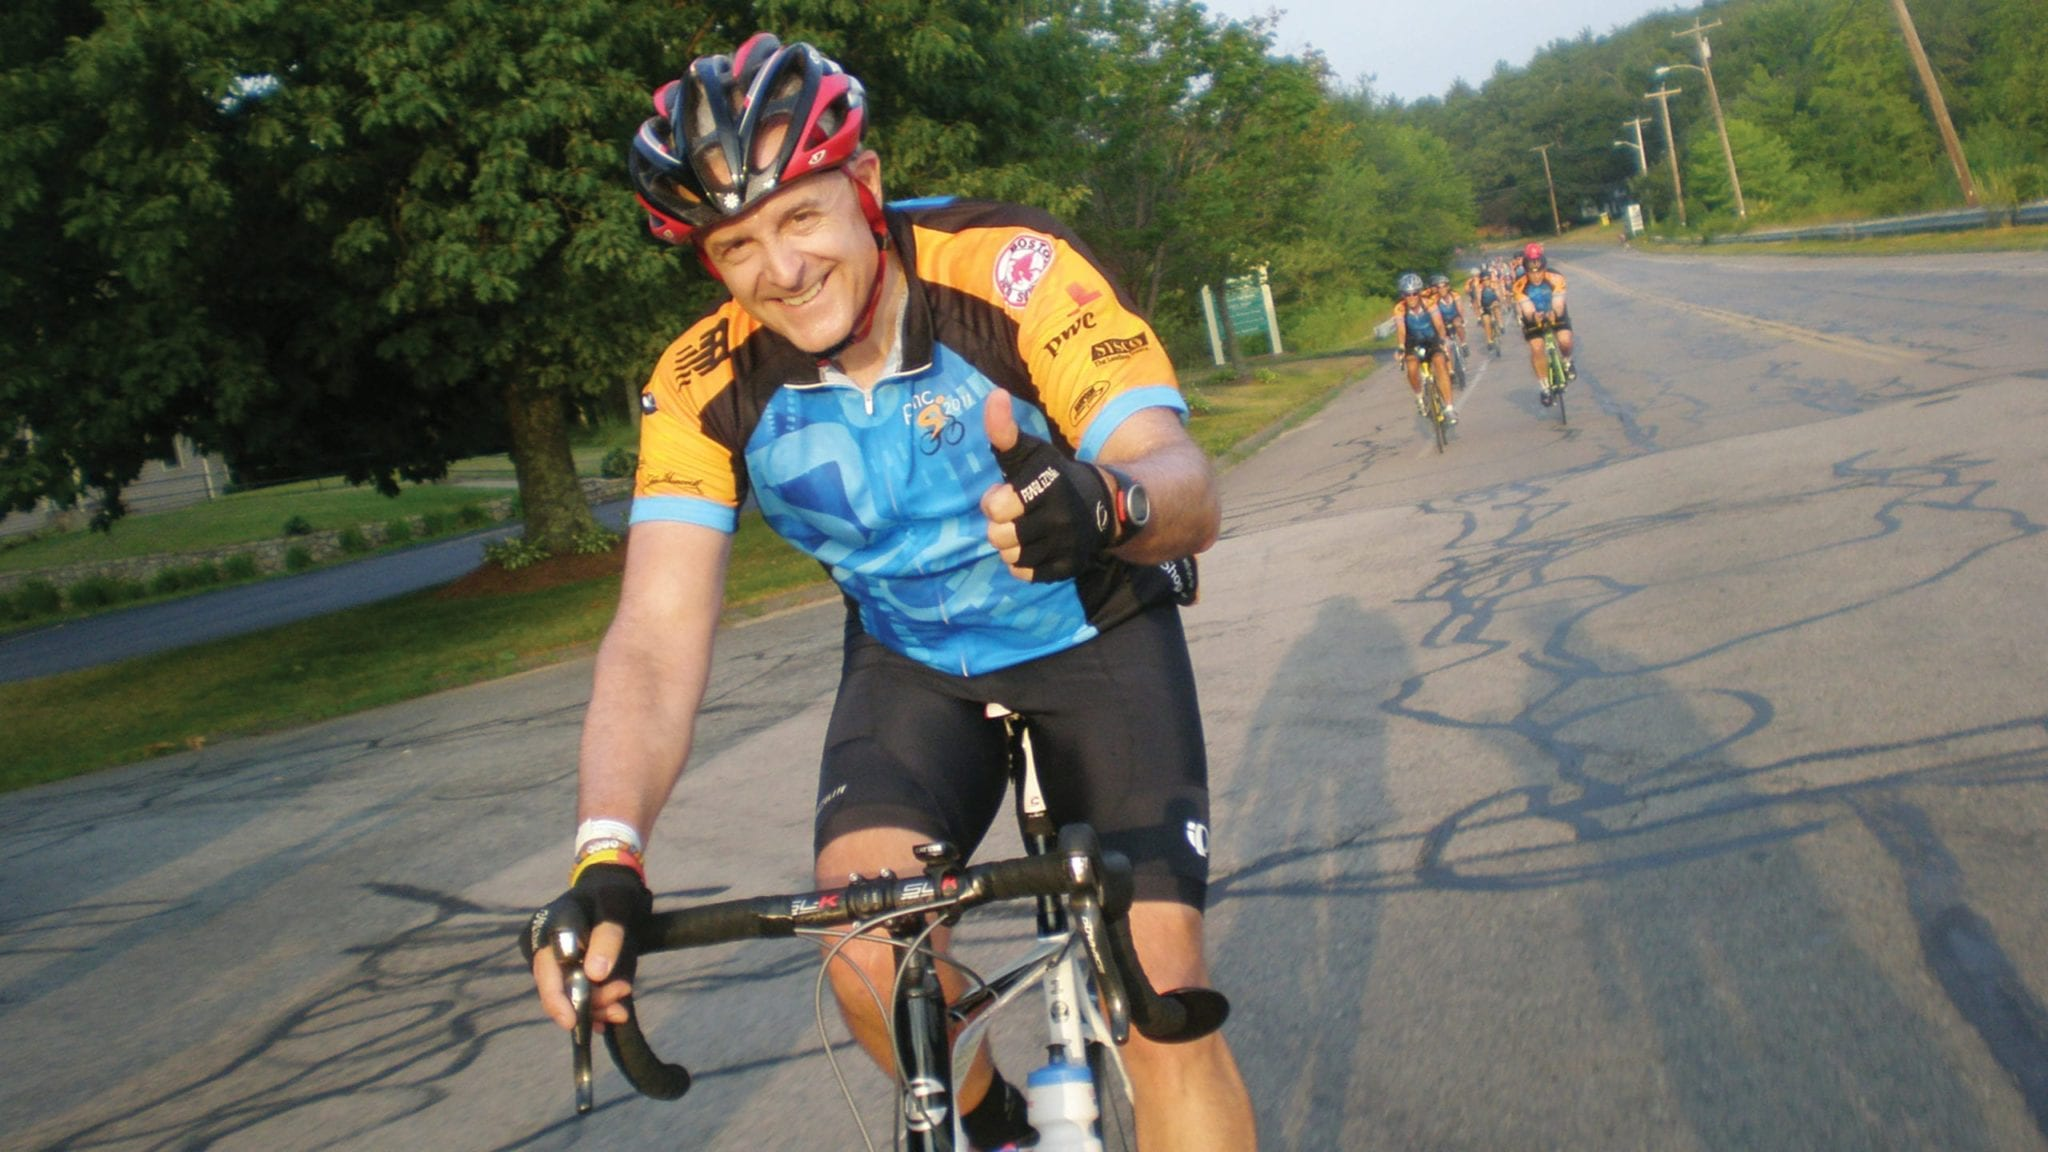 B'ville cyclist takes part in charity ride